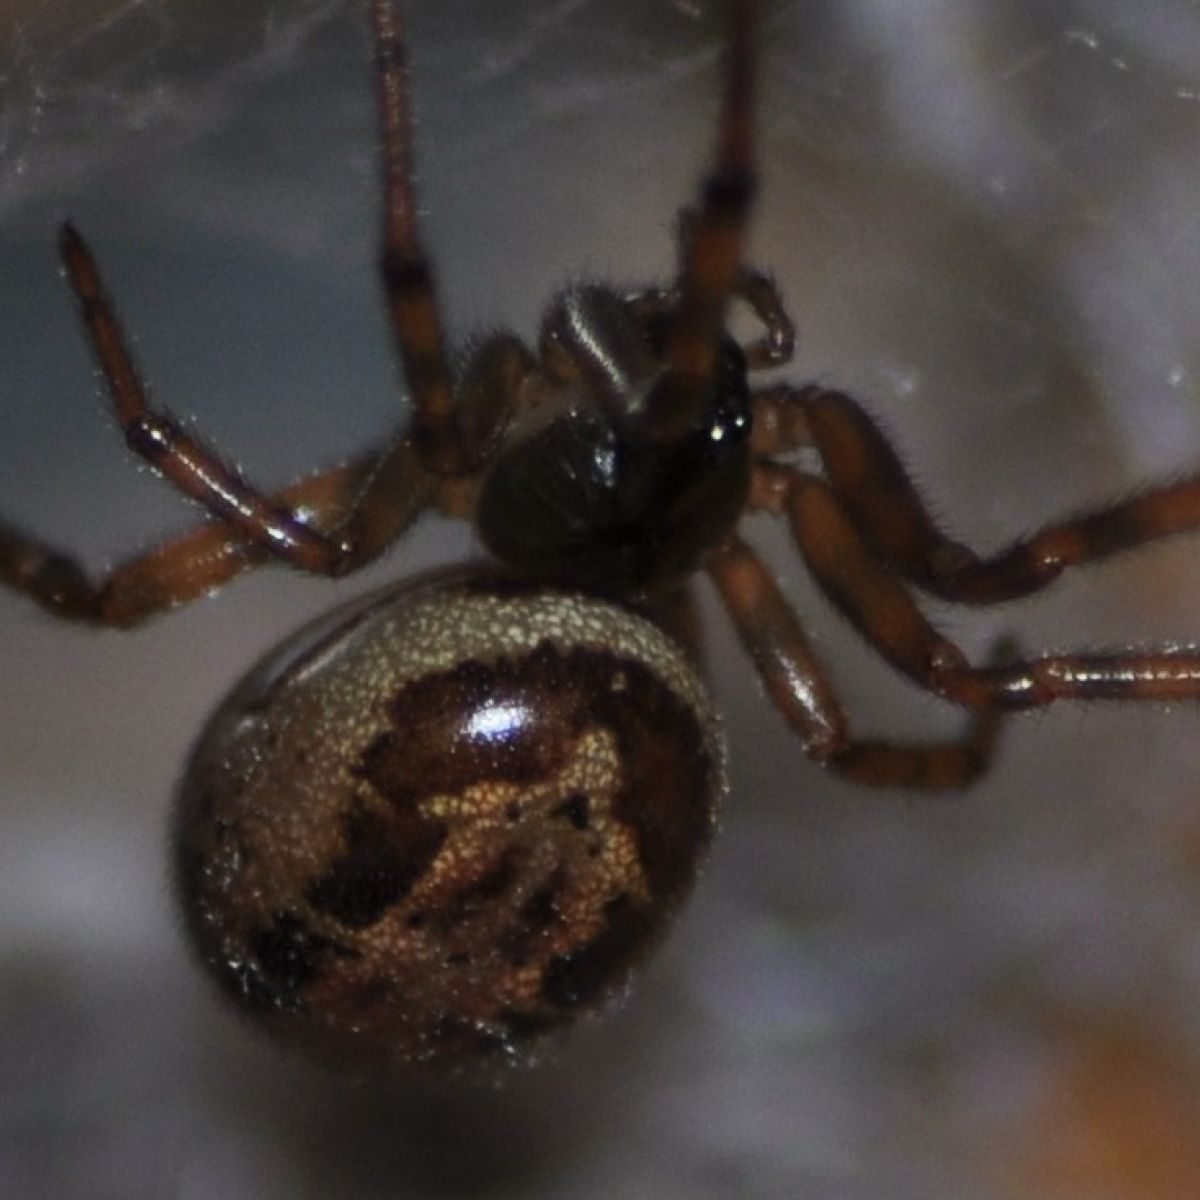 False Widow Spiders In Ireland More Venomous Than First Believed